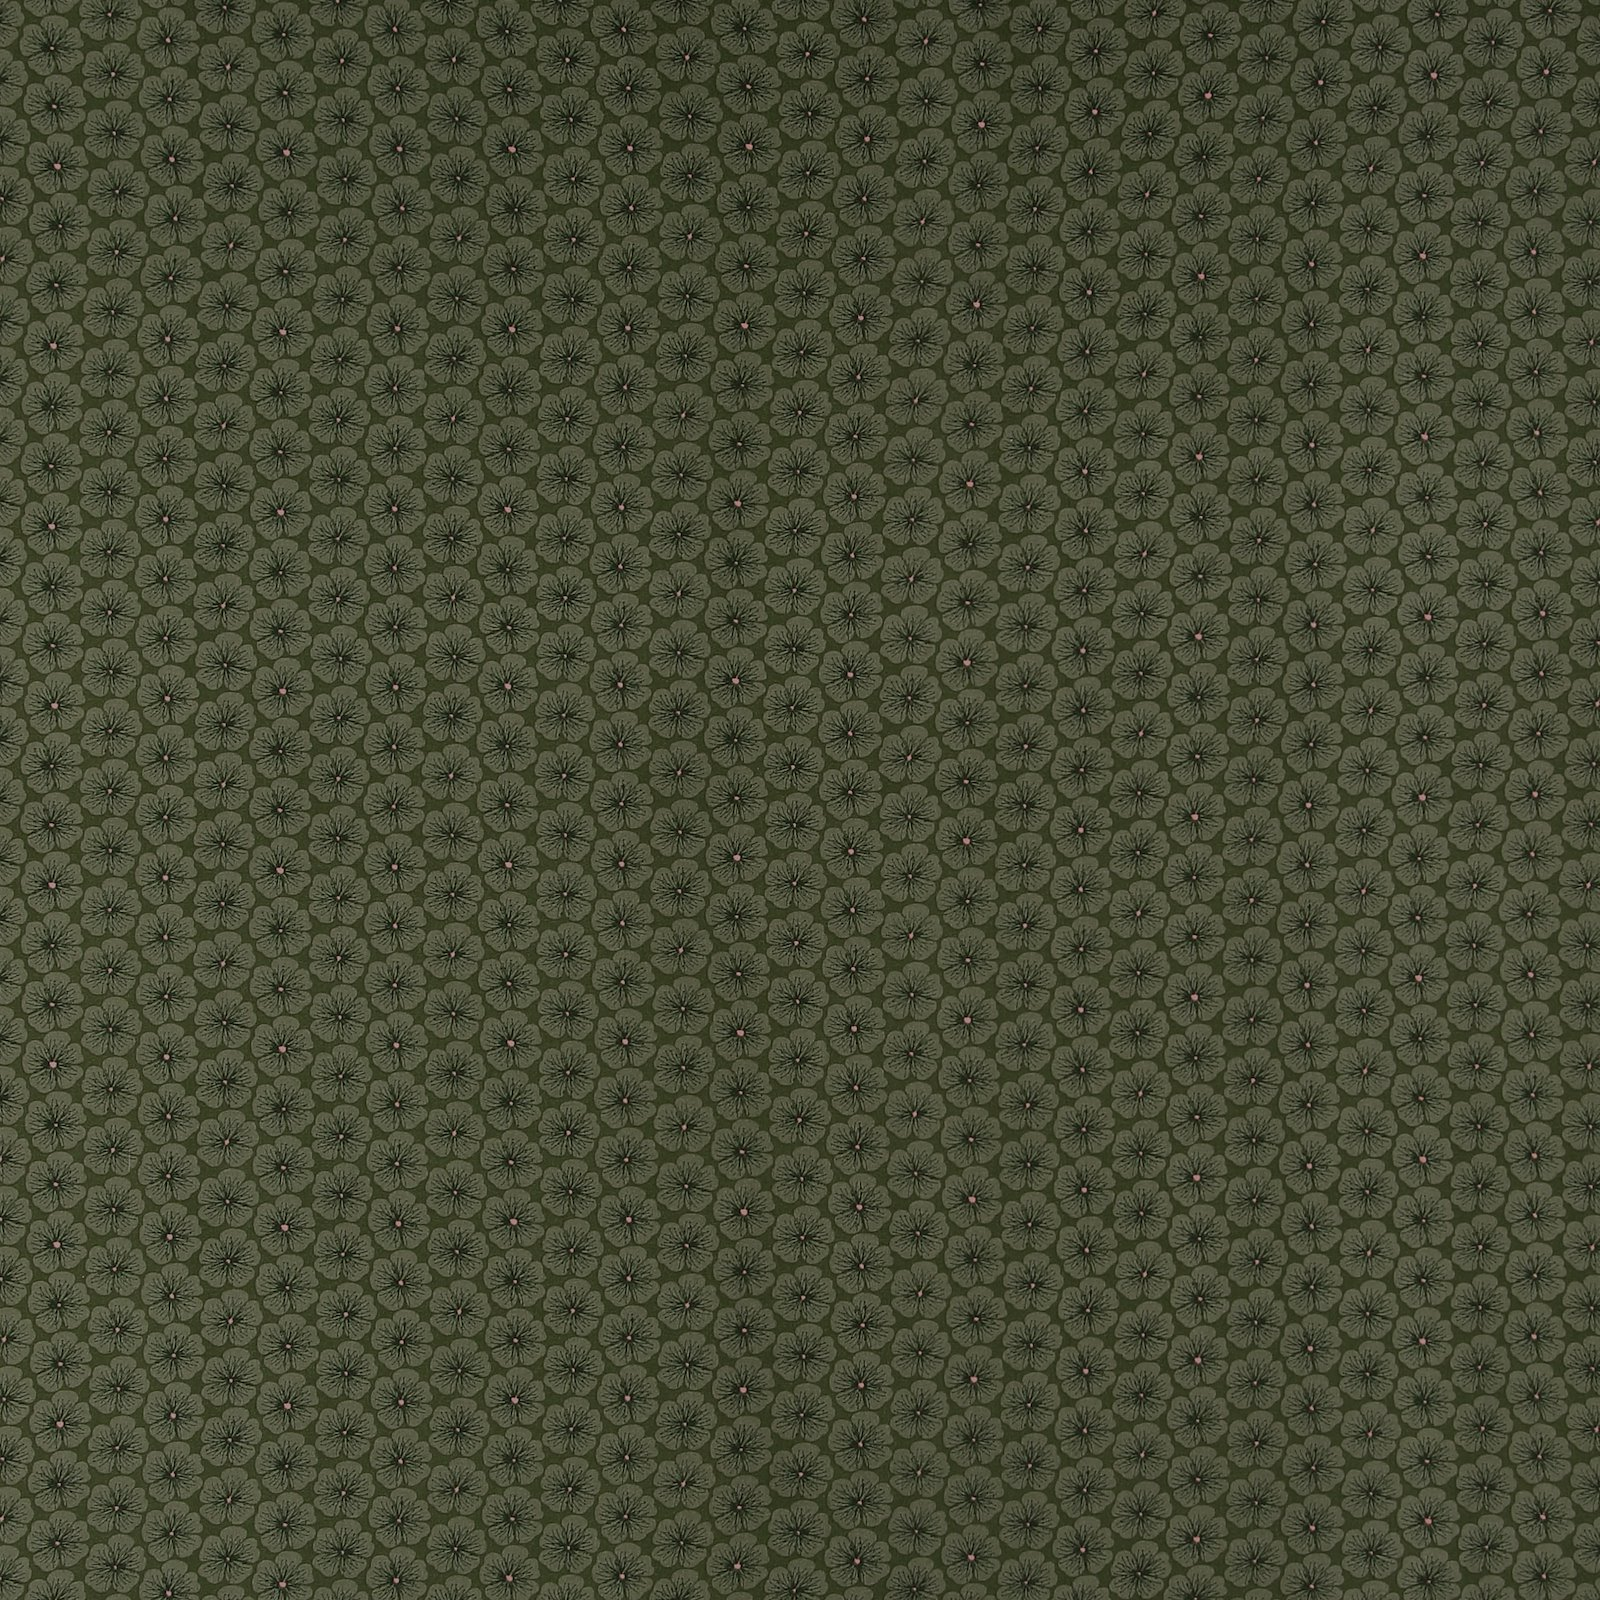 Woven viscose army green with flowers 710573_pack_sp